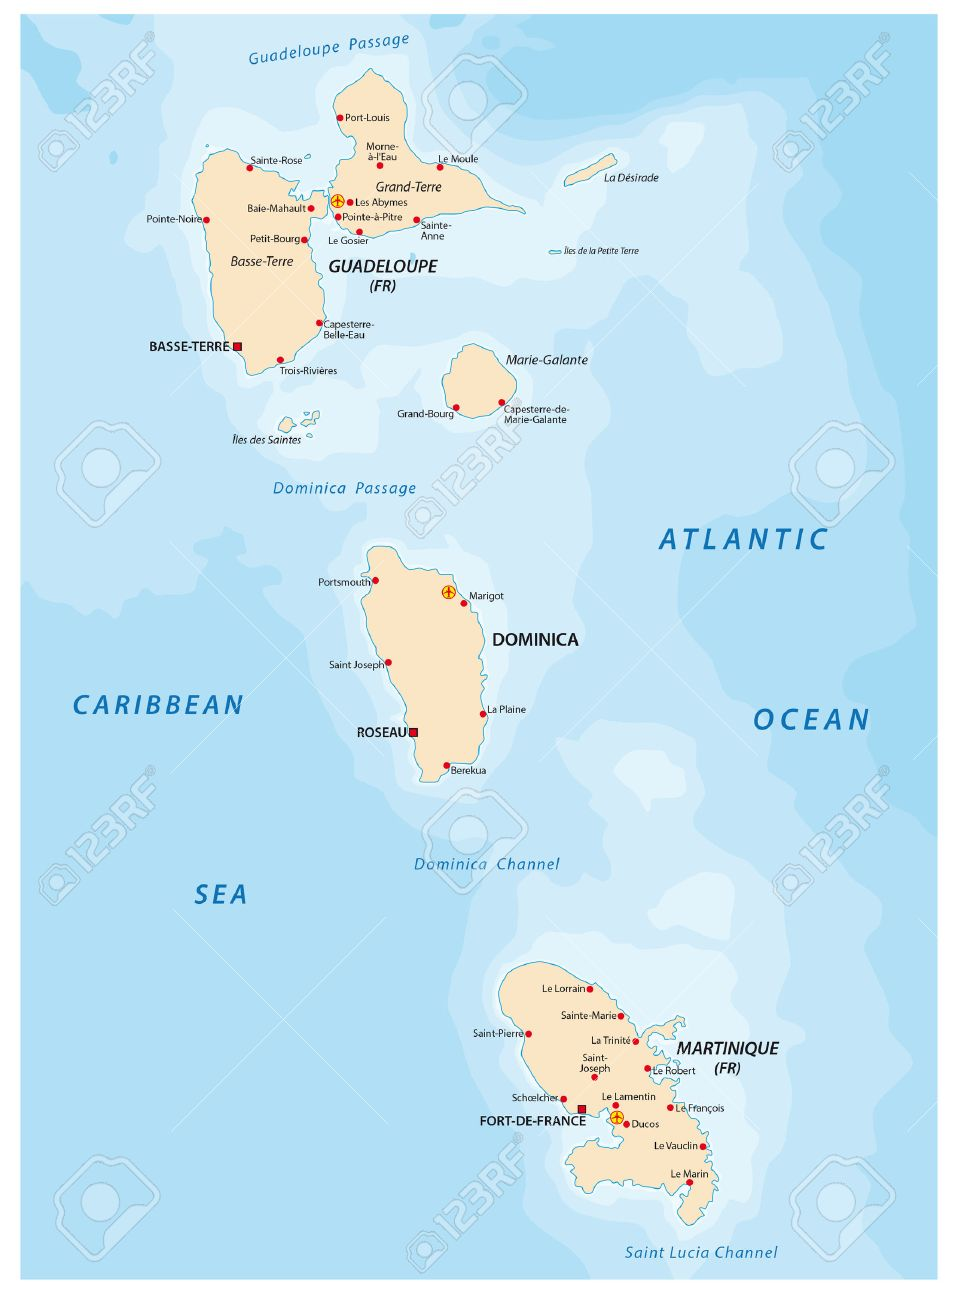 Guadeloupe And Martinique Dominica Map Royalty Free Cliparts